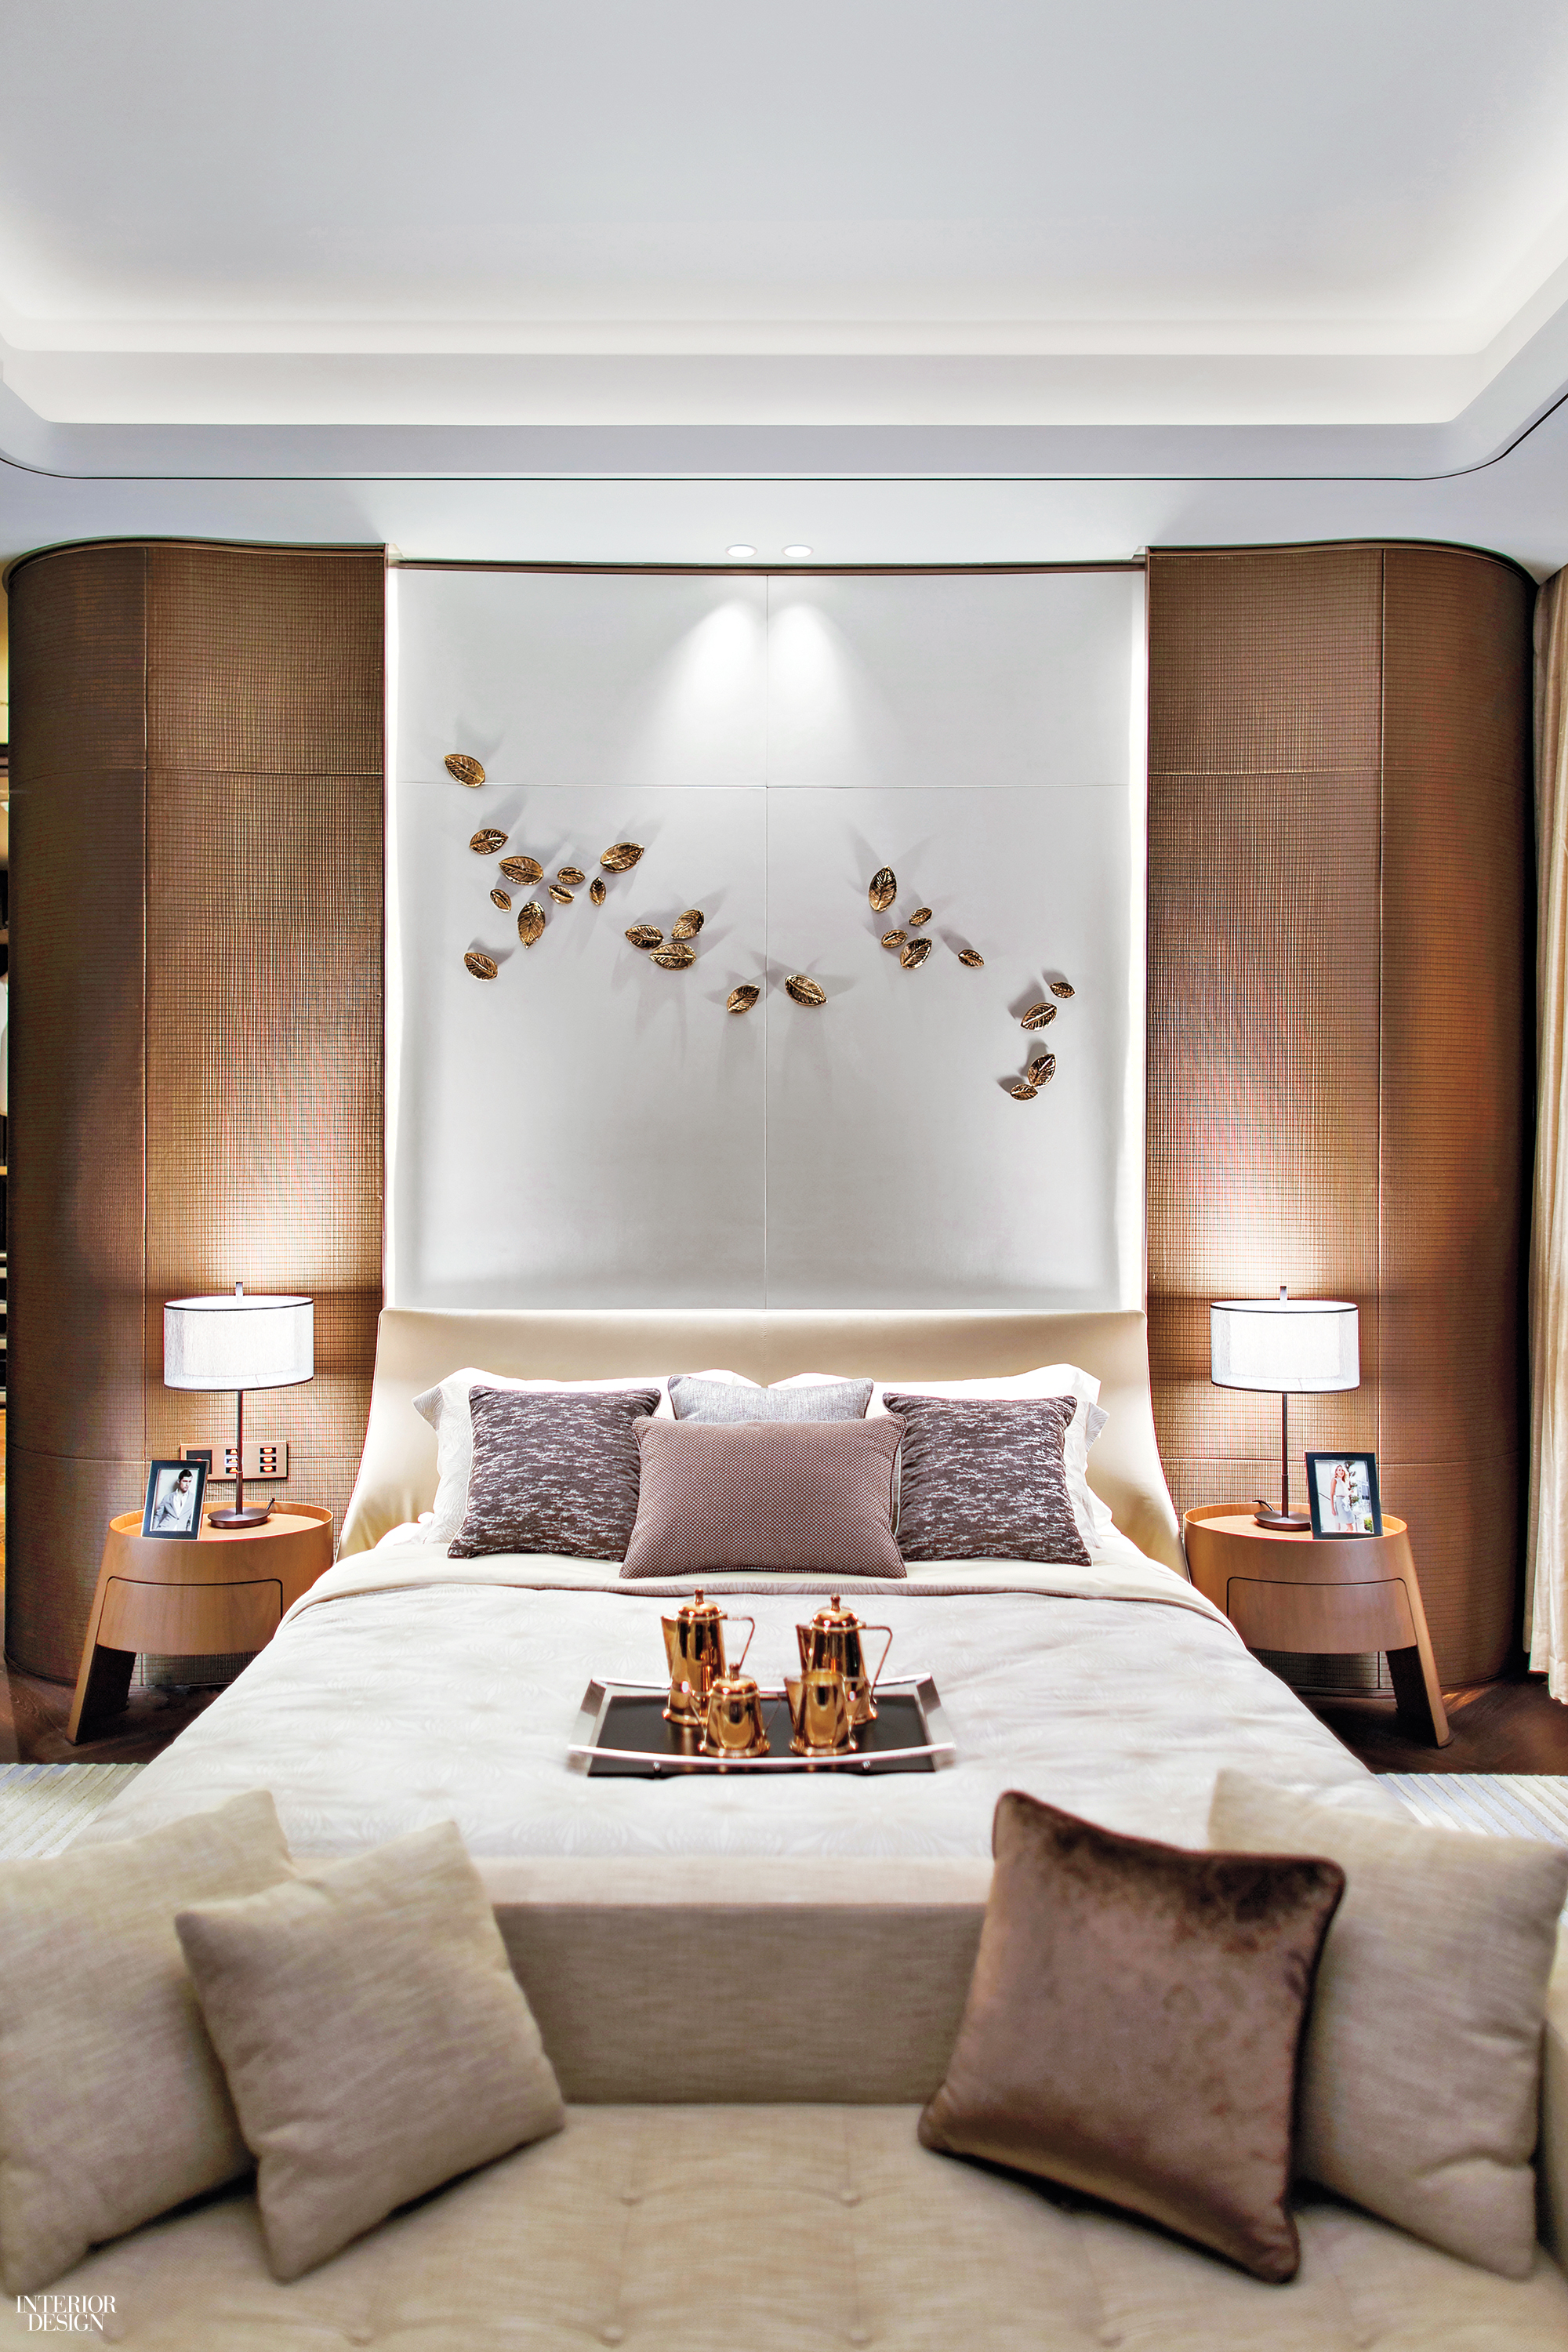 Get a Room! 20 Seductive Master Suites and Hotel Guestrooms